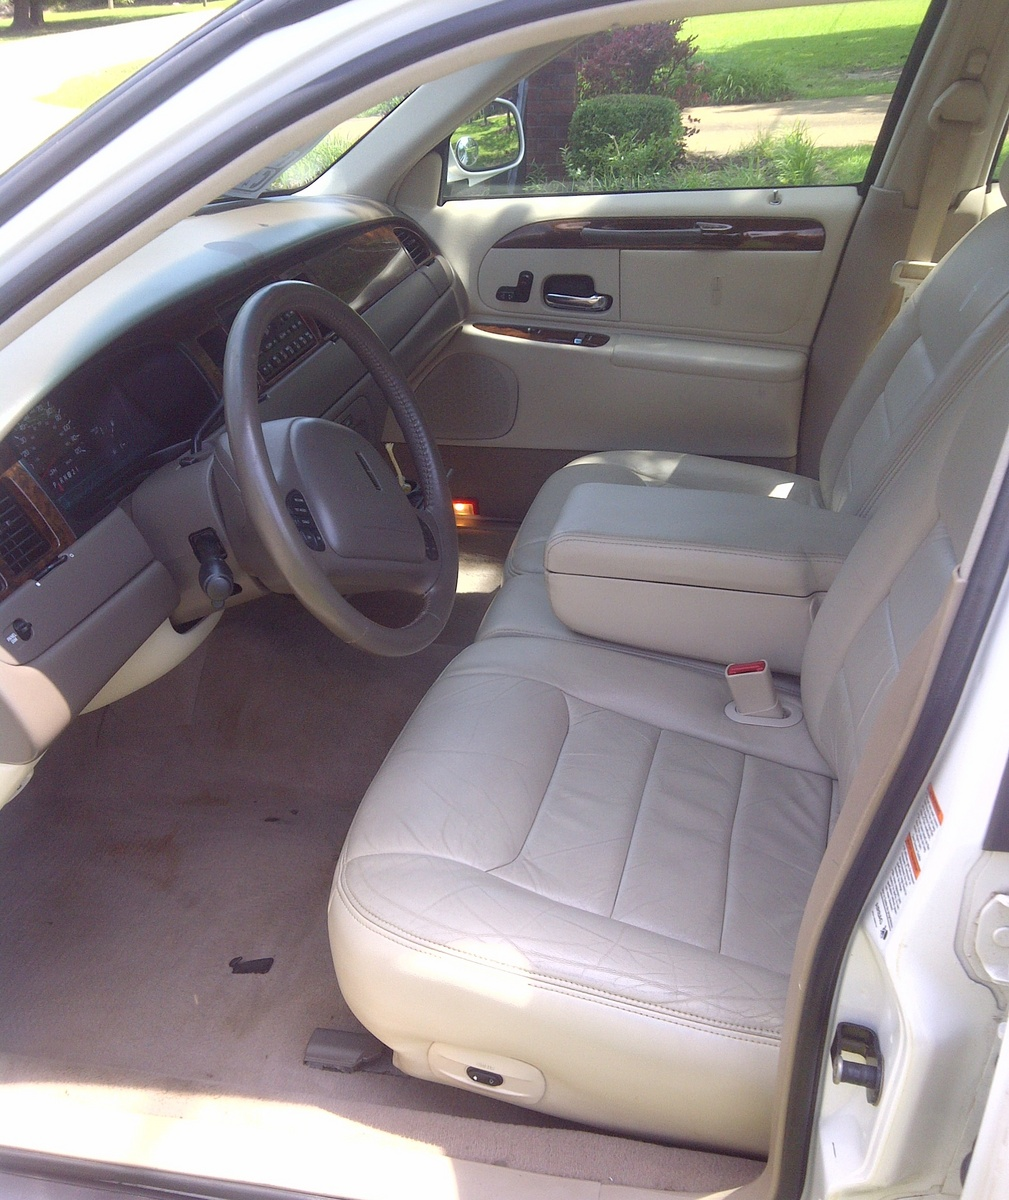 2011 Lincoln Mkt Interior: 1999 Lincoln Town Car